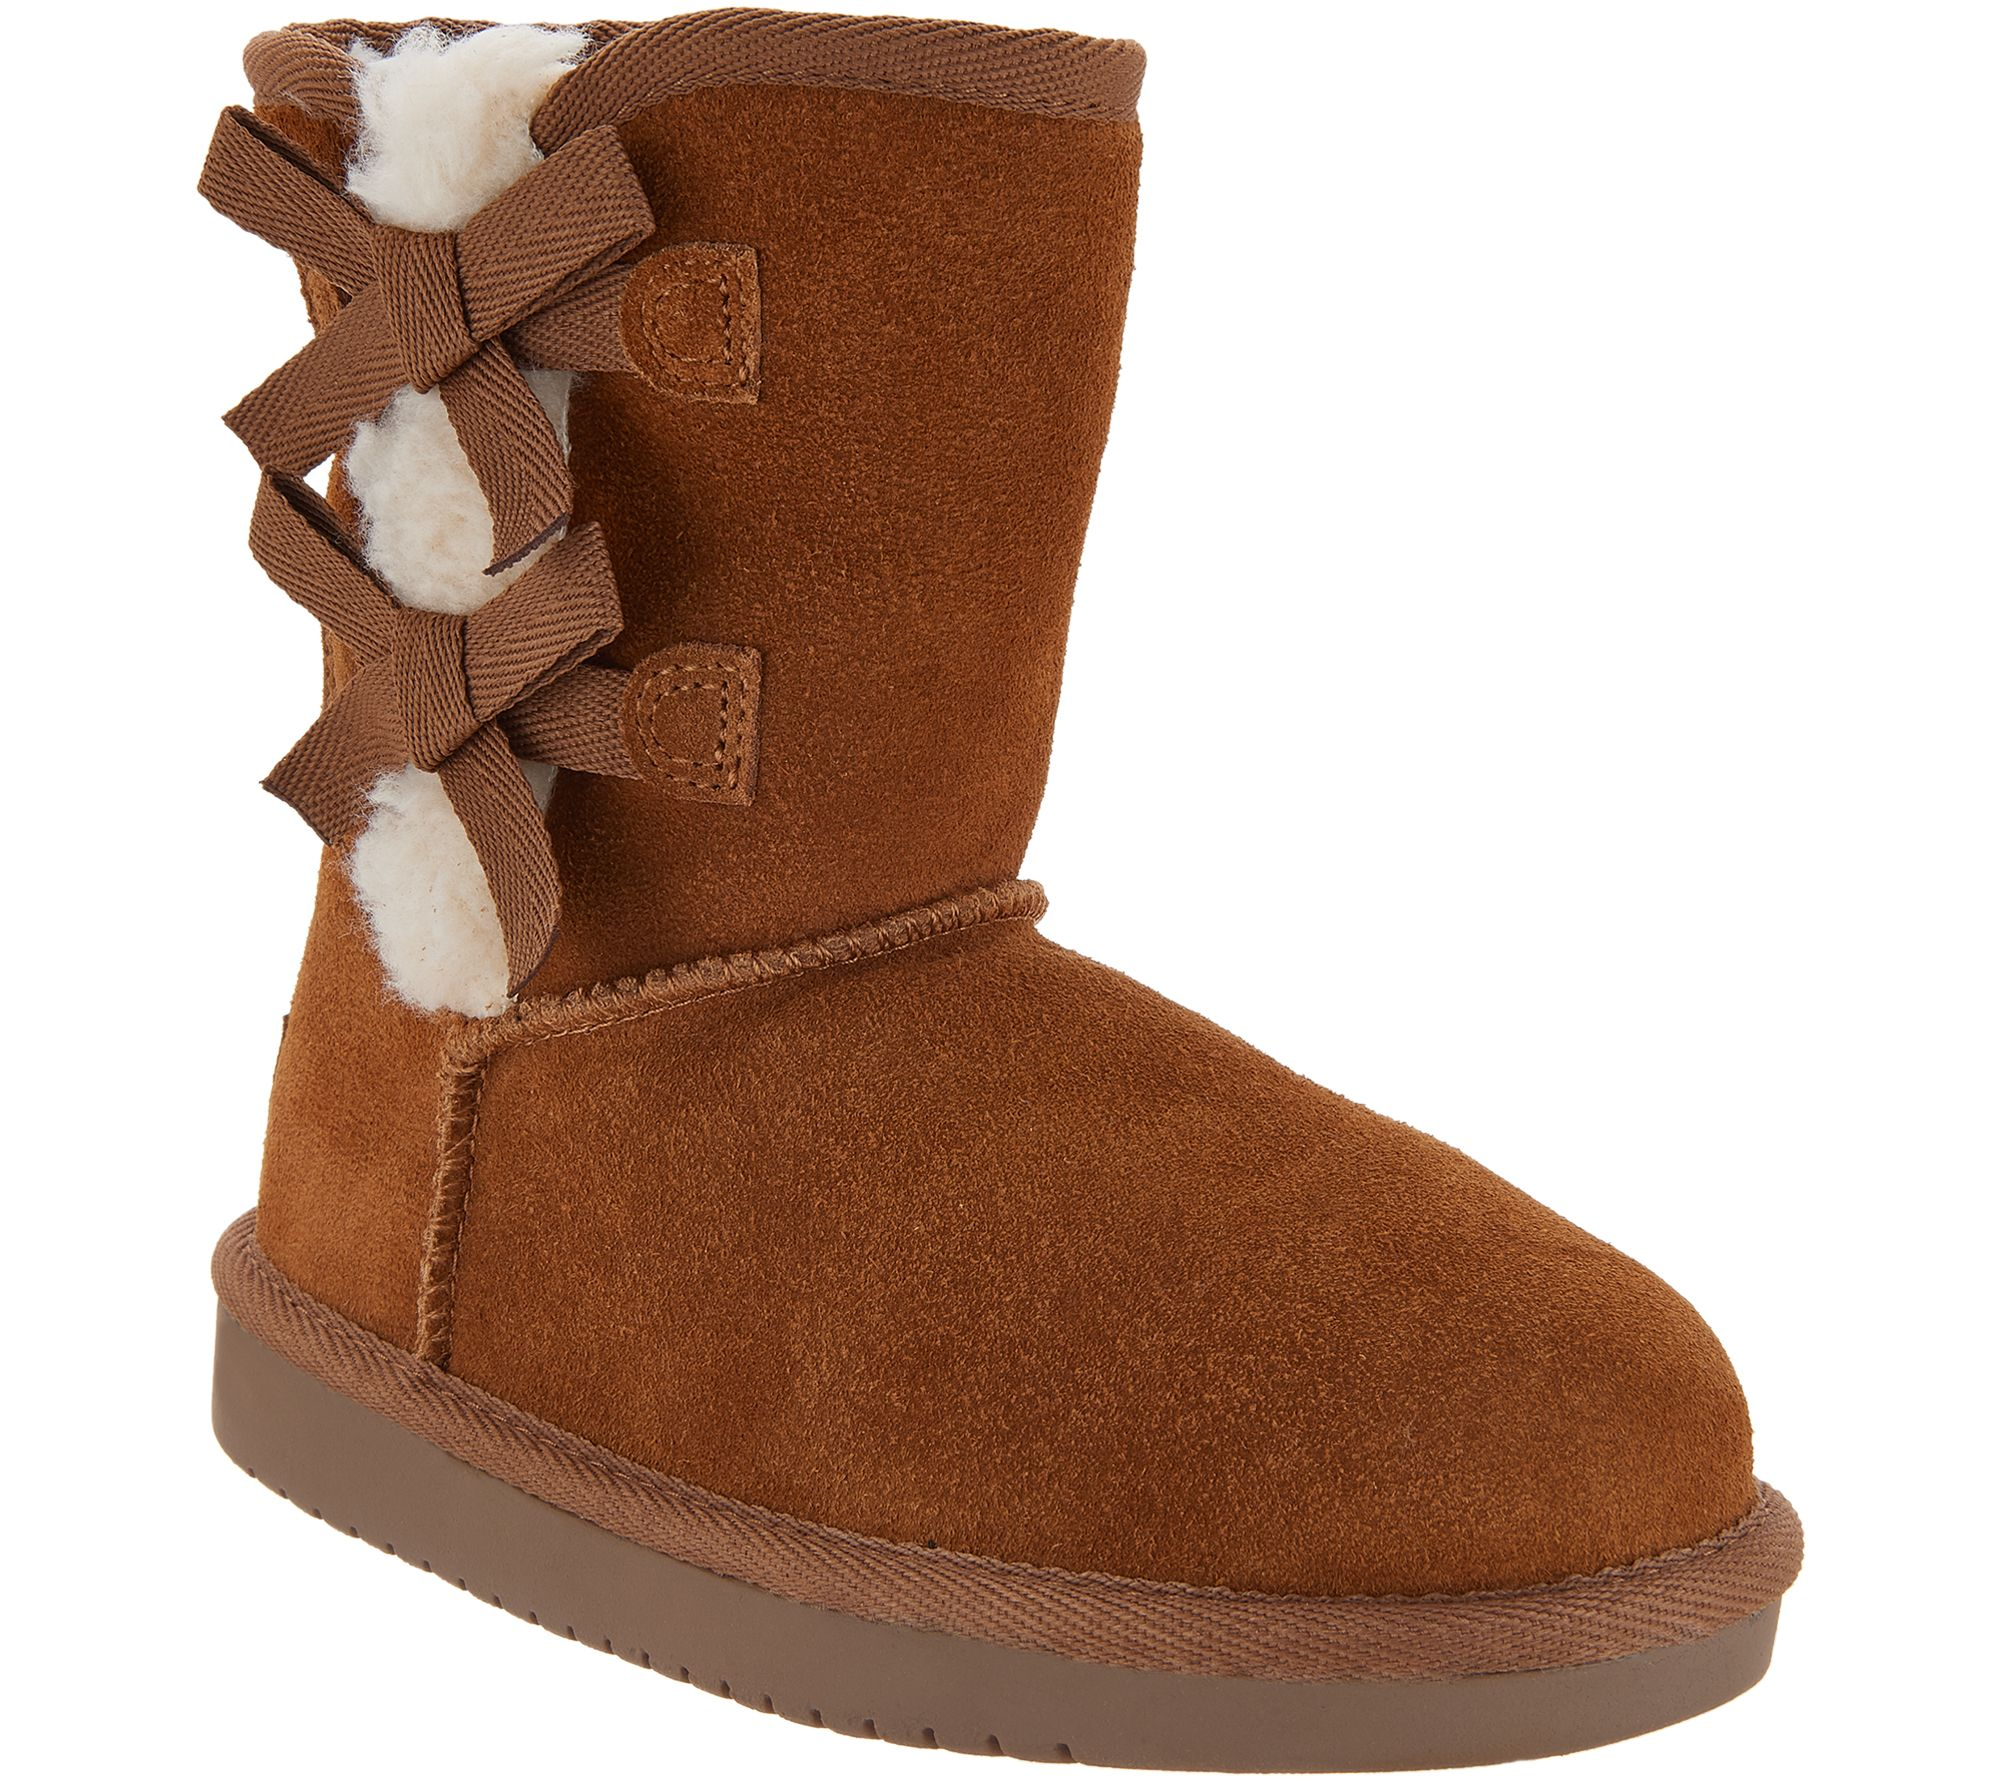 5919b61372a868 Koolaburra by UGG Kids Suede Bow Short Boots - Victoria - Page 1 ...